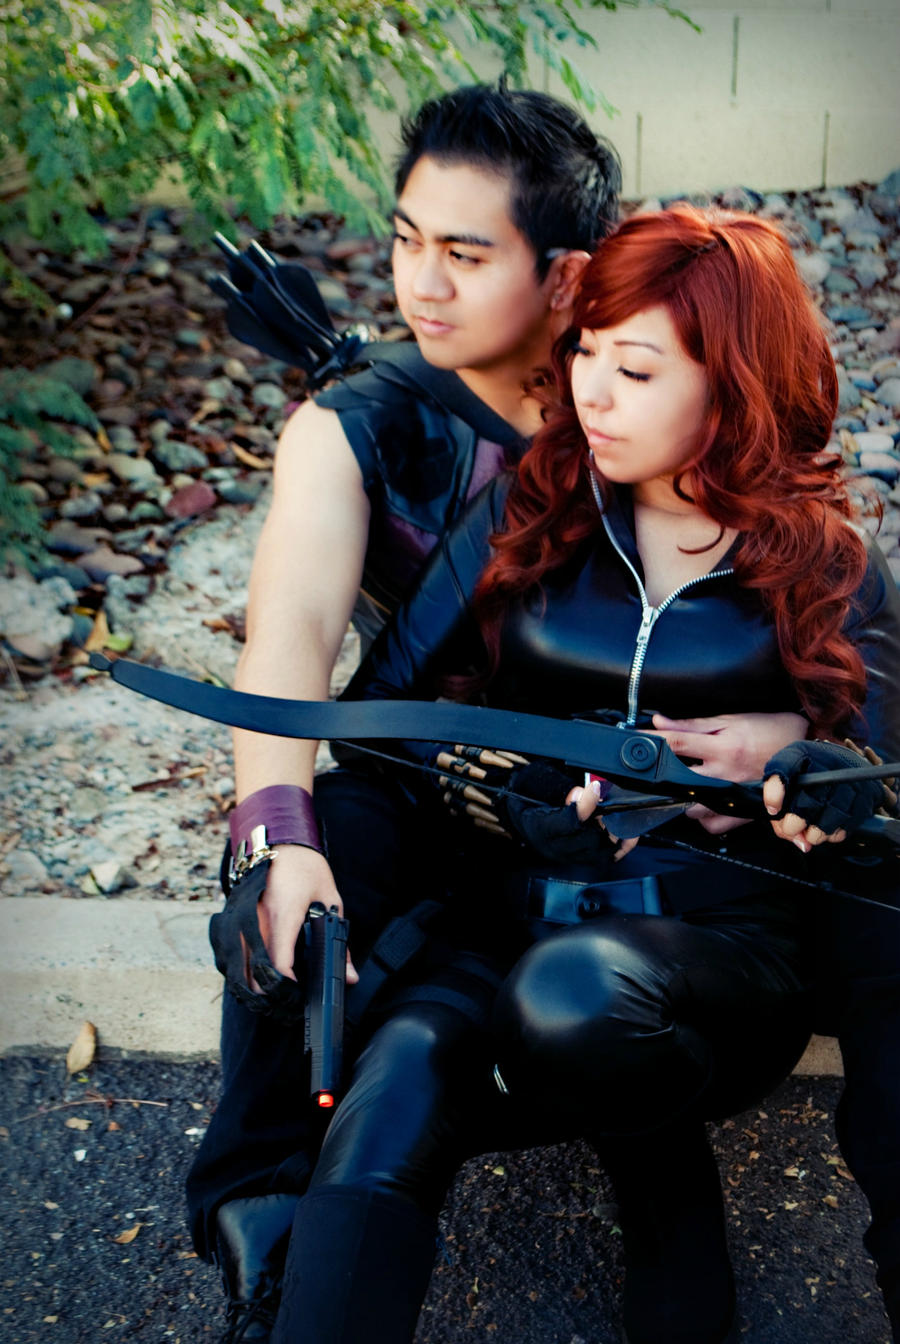 Hawkeye and Black Widow Cosplay by Oniakako